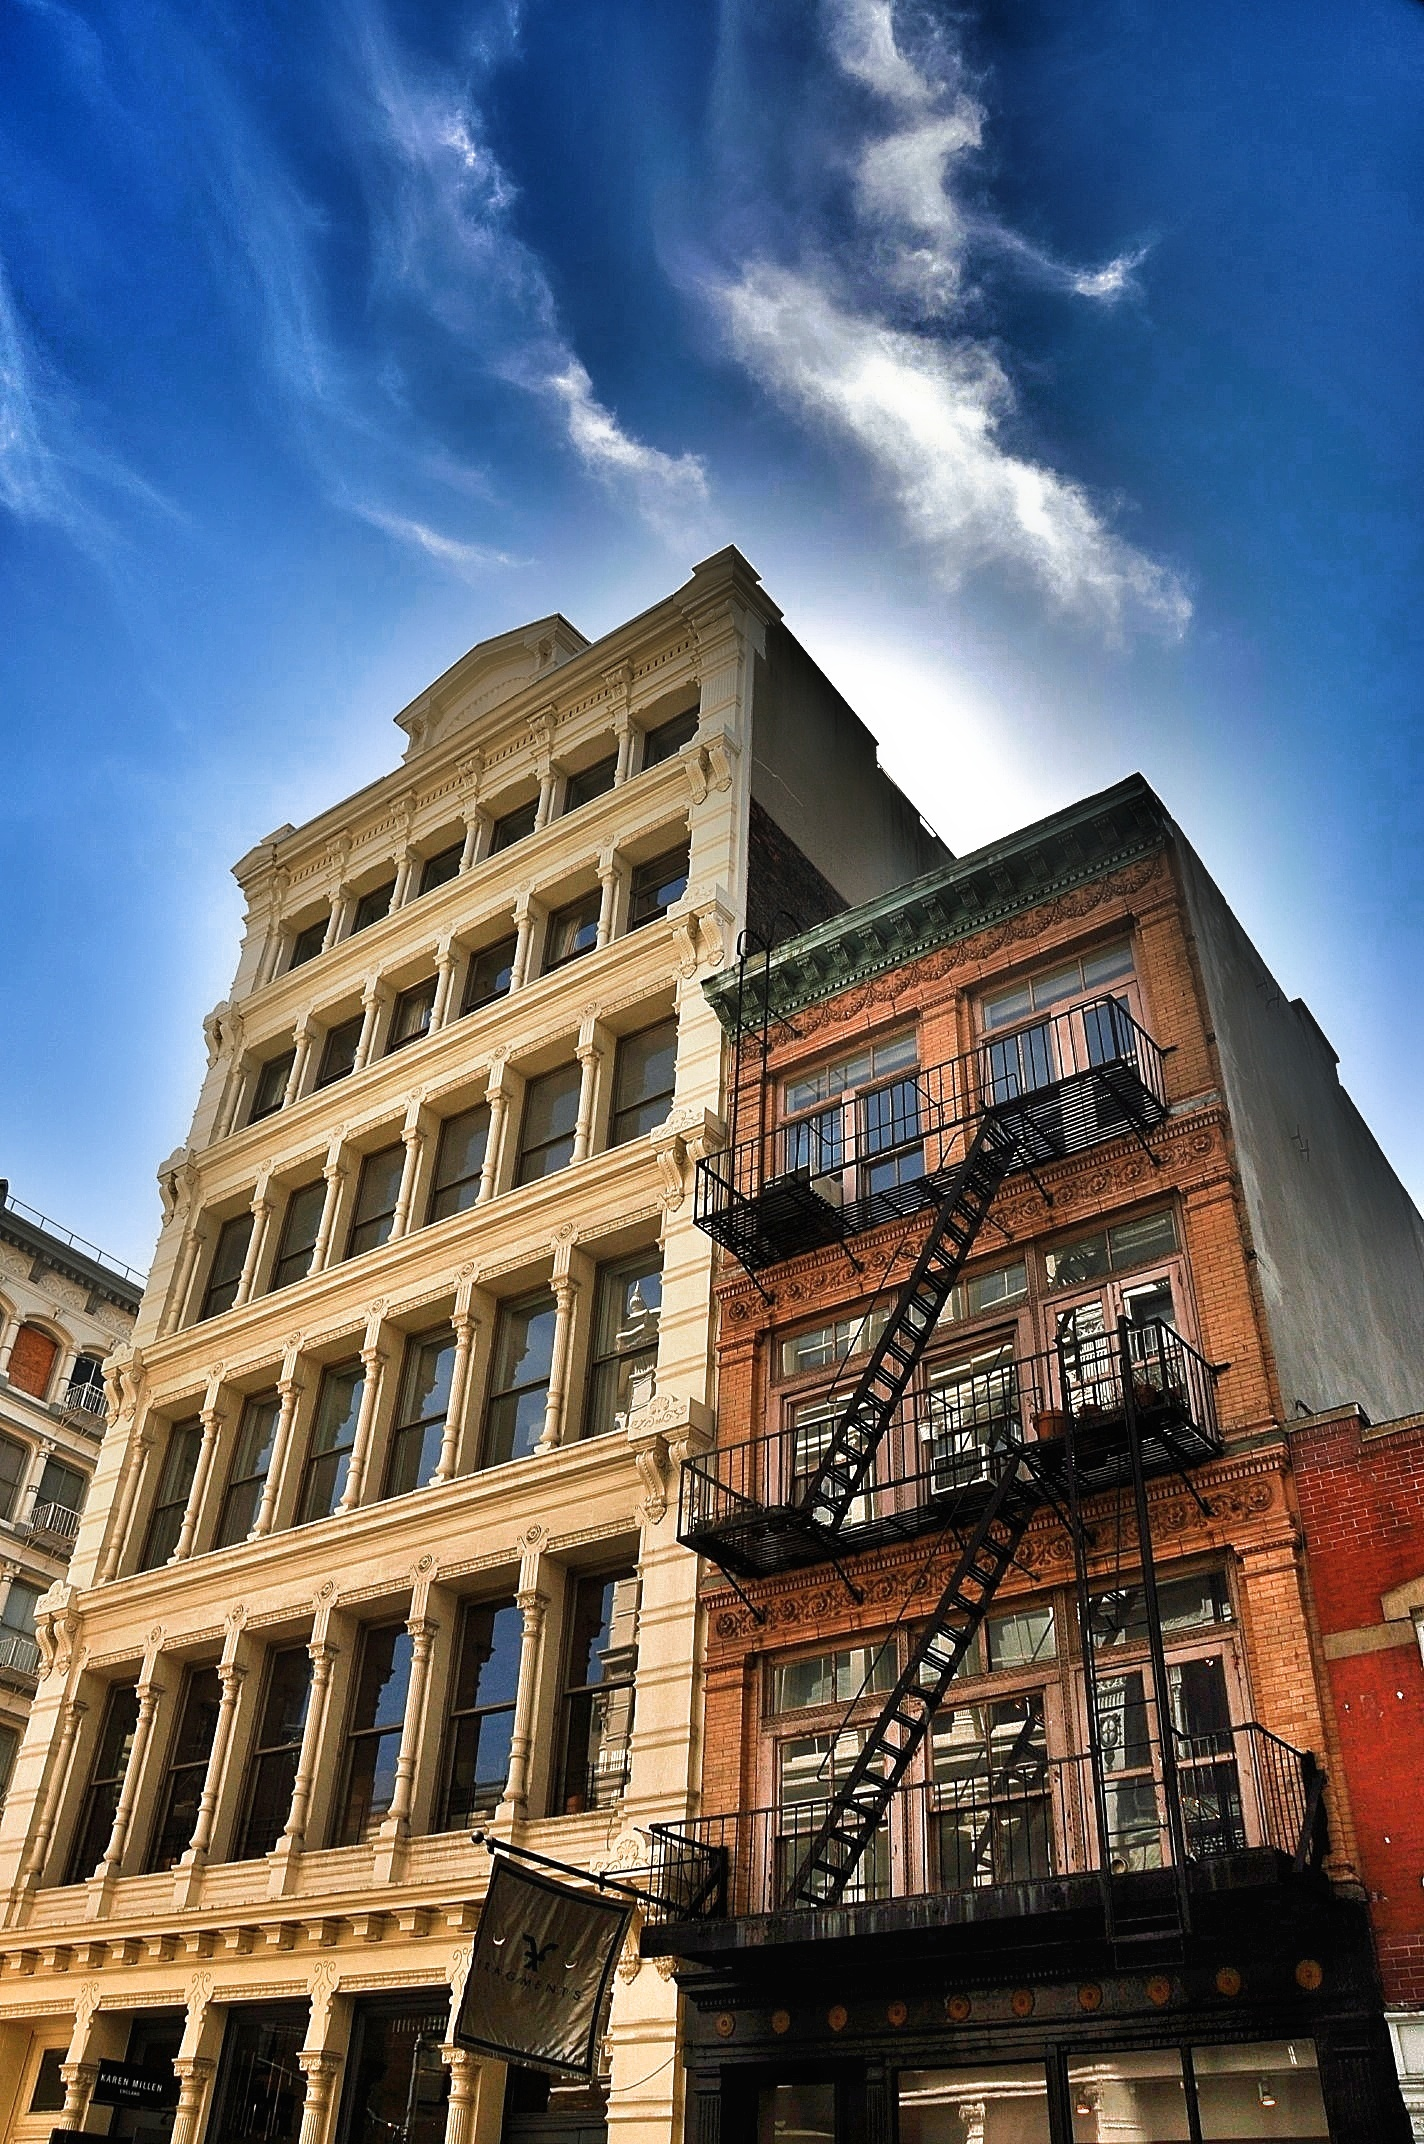 Lofts in Soho